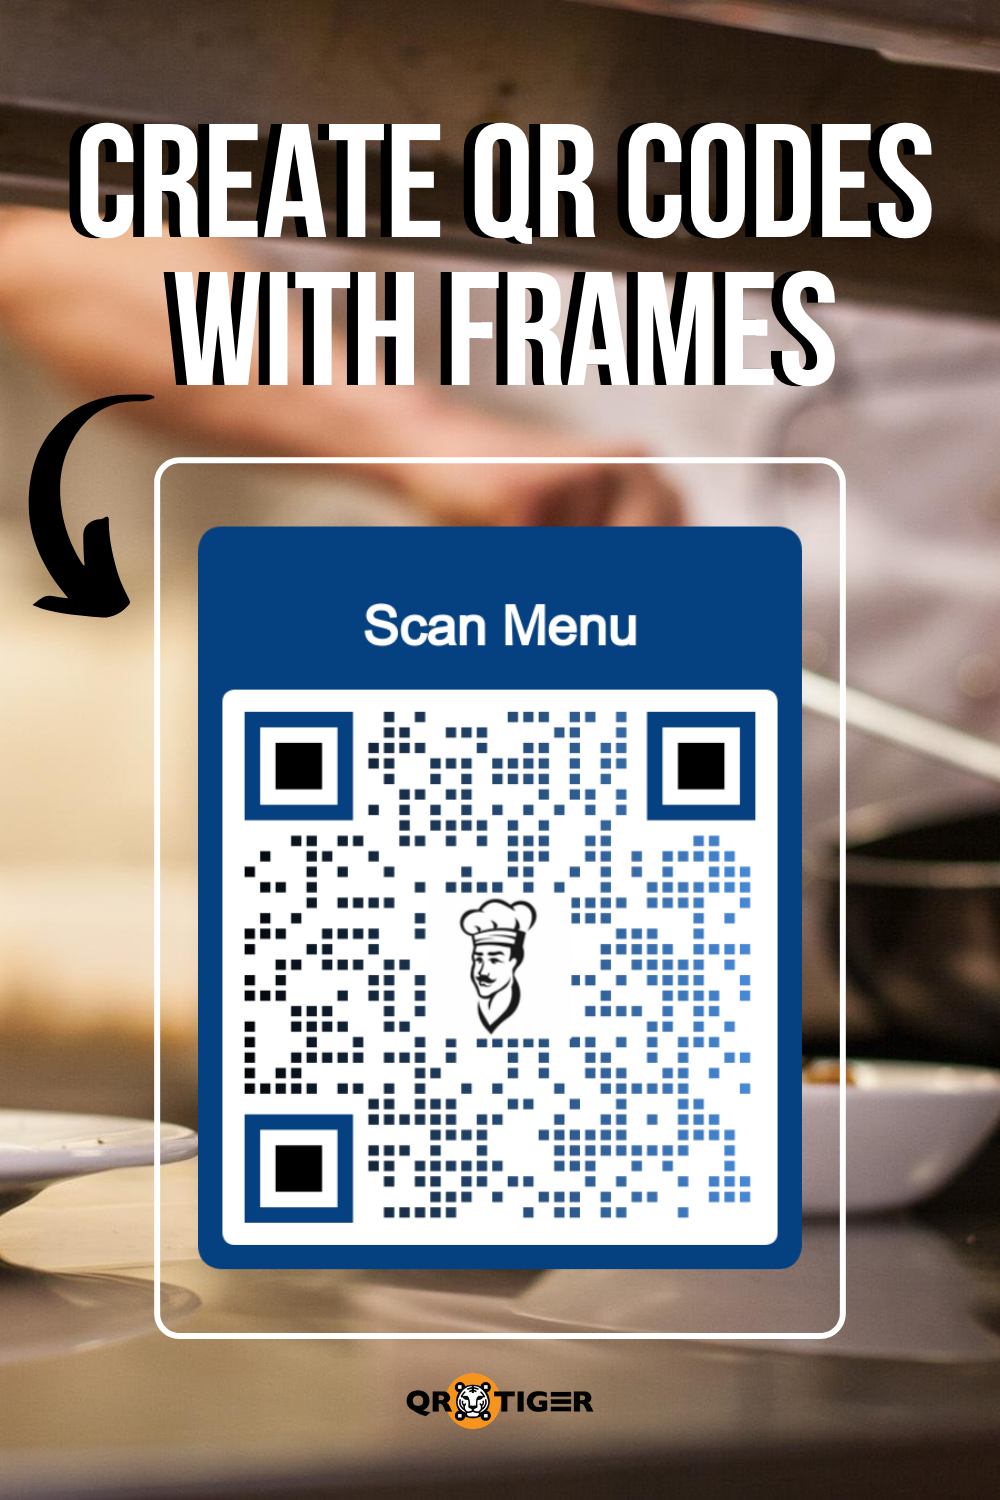 Scan or click this QR code to sign up for our BRAND NEW